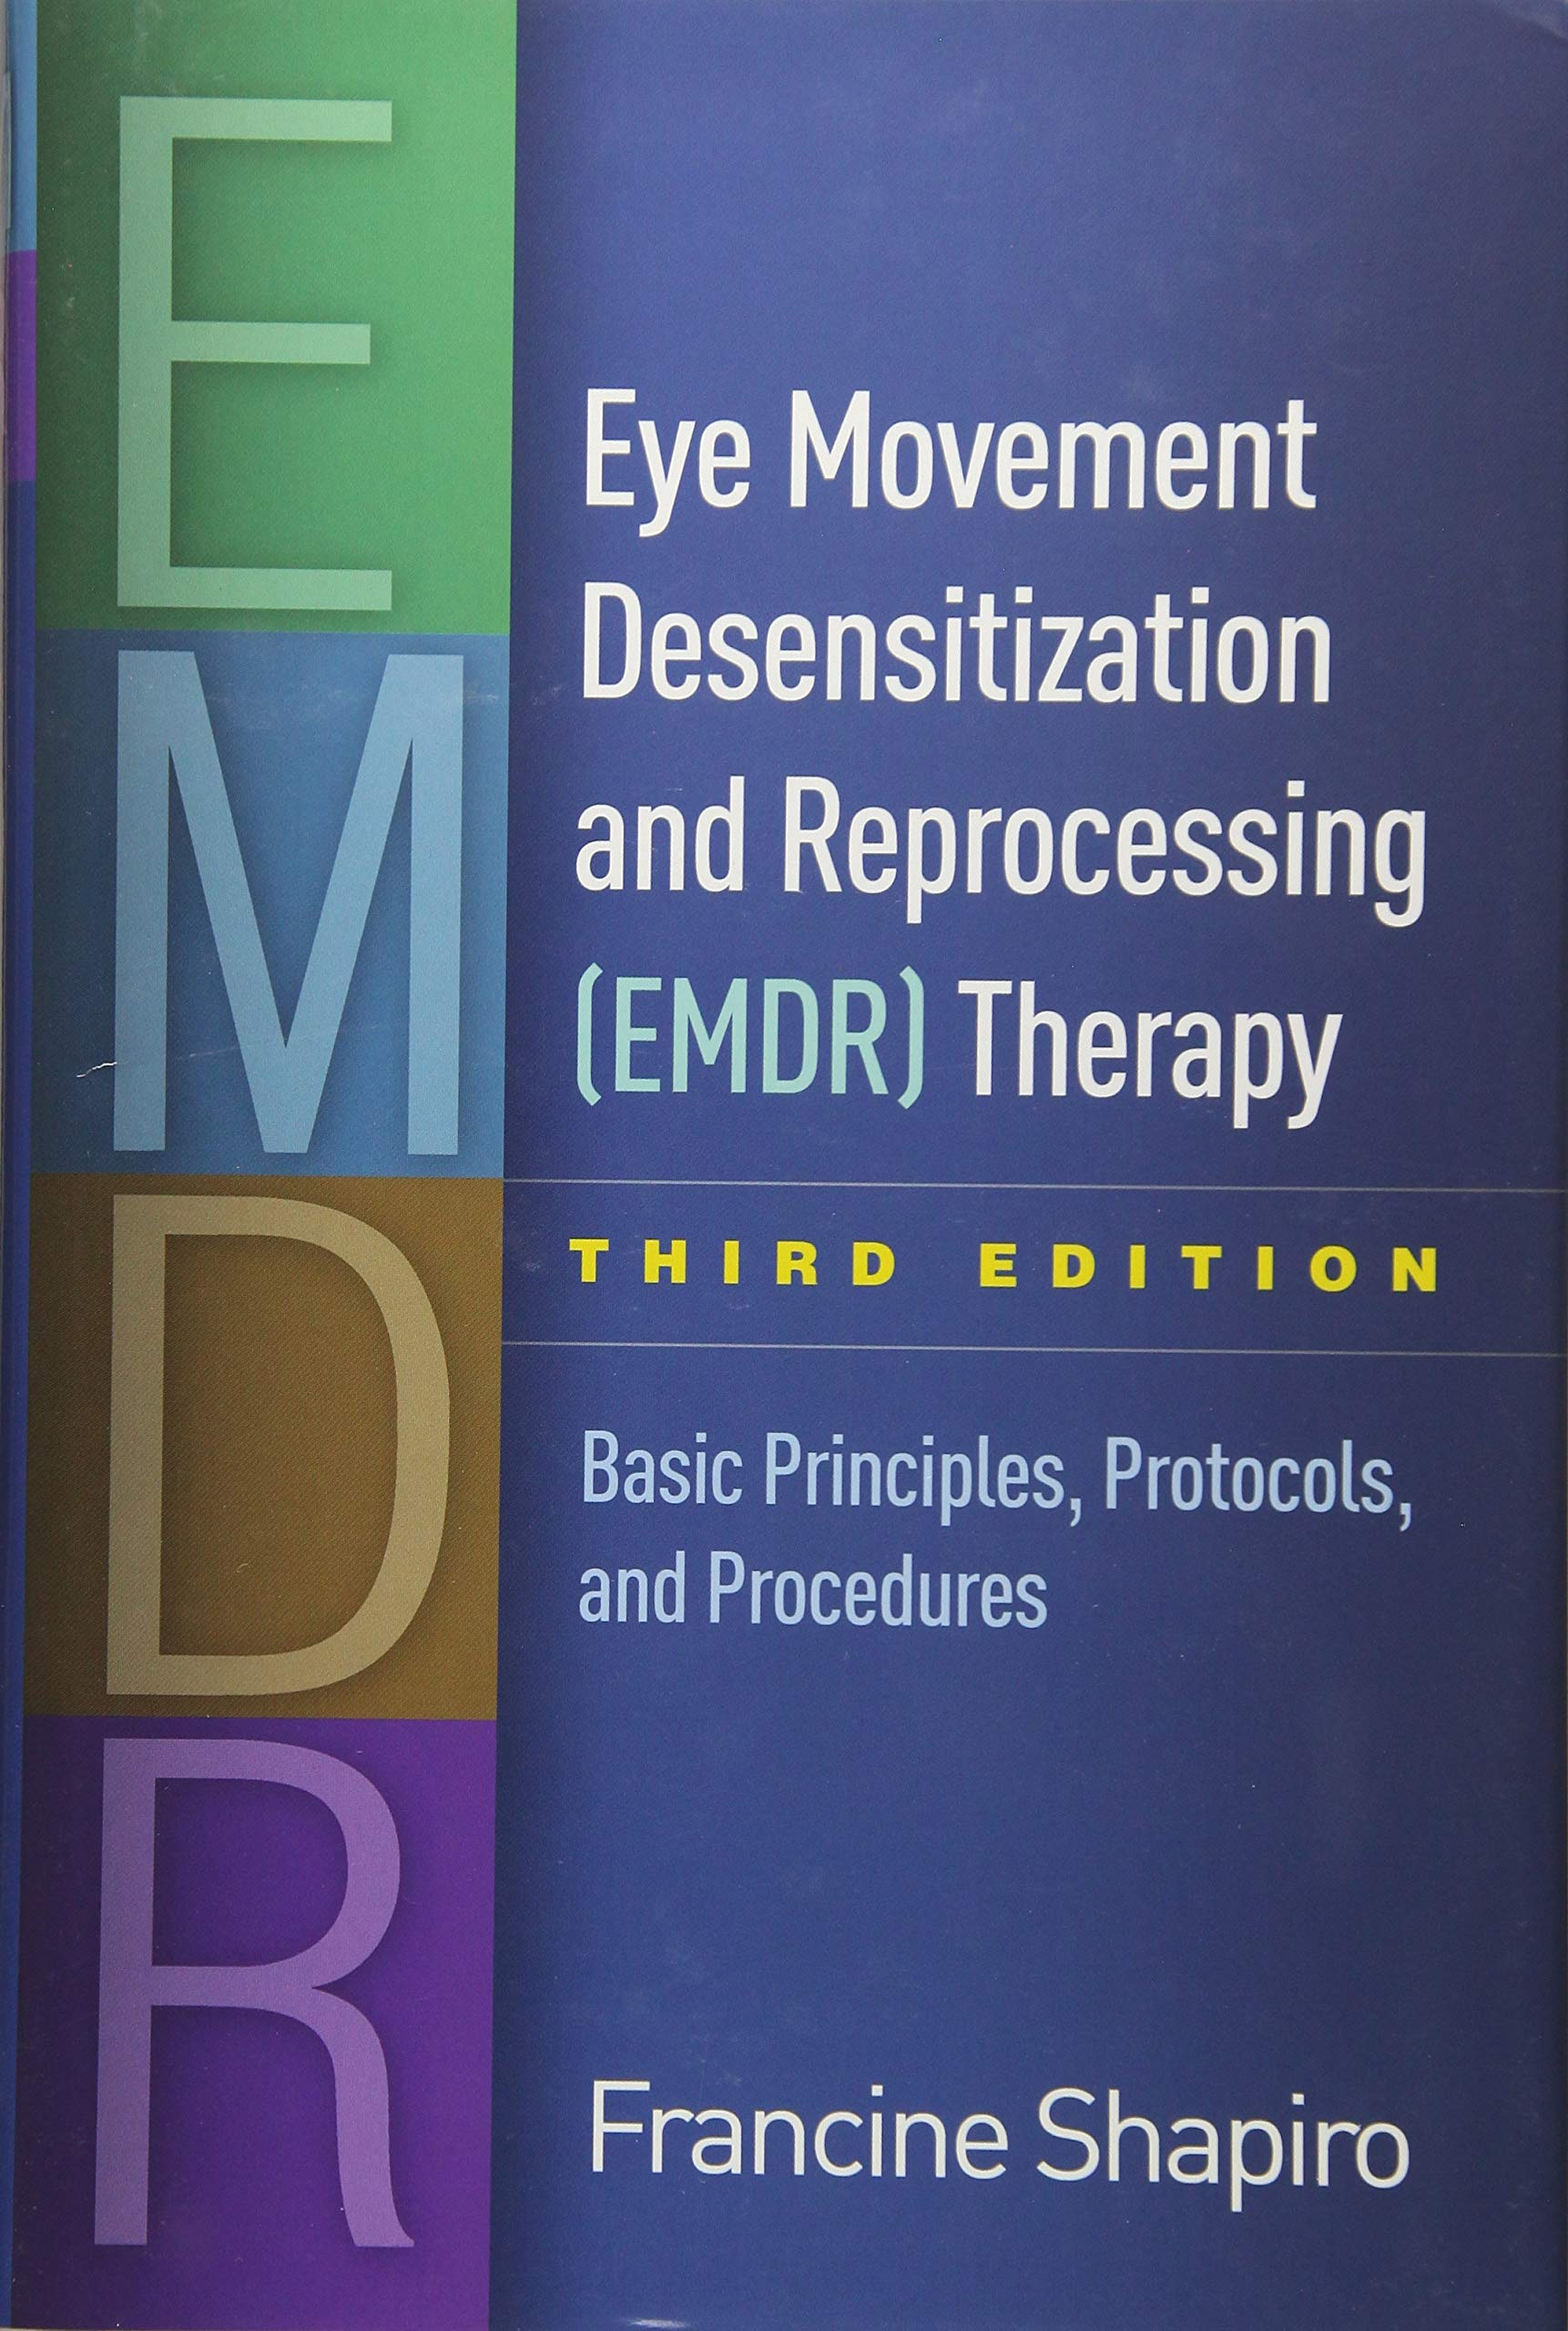 Eye Movement Desensitization and Reprocessing (EMDR) Therapy, Third Edition: Basic Principles, Protocols, and Procedures by The Guilford Press